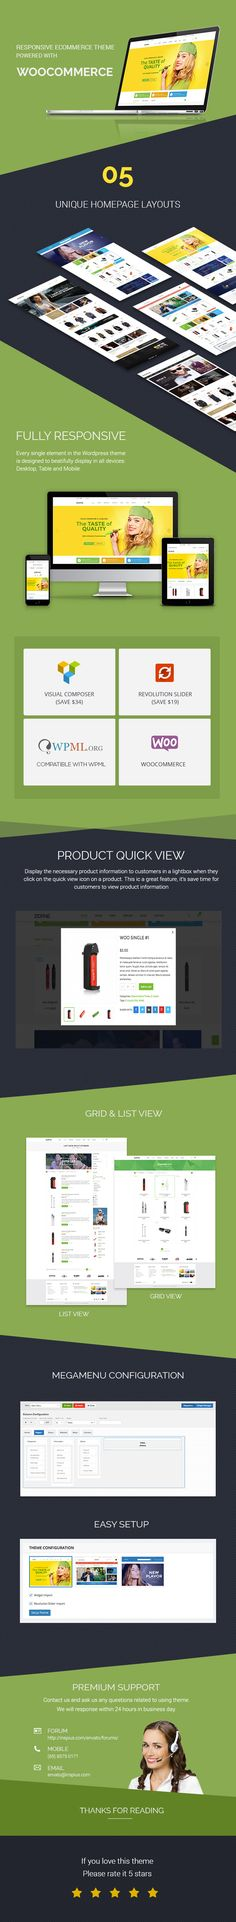 We are happy to announce our new theme: Zidane – Woocommerce                   Responsive Wordpress  Theme.  Zidane is a Woocommerce Responsive Wordpress Theme suitable for any kind of e-Cigarette ...